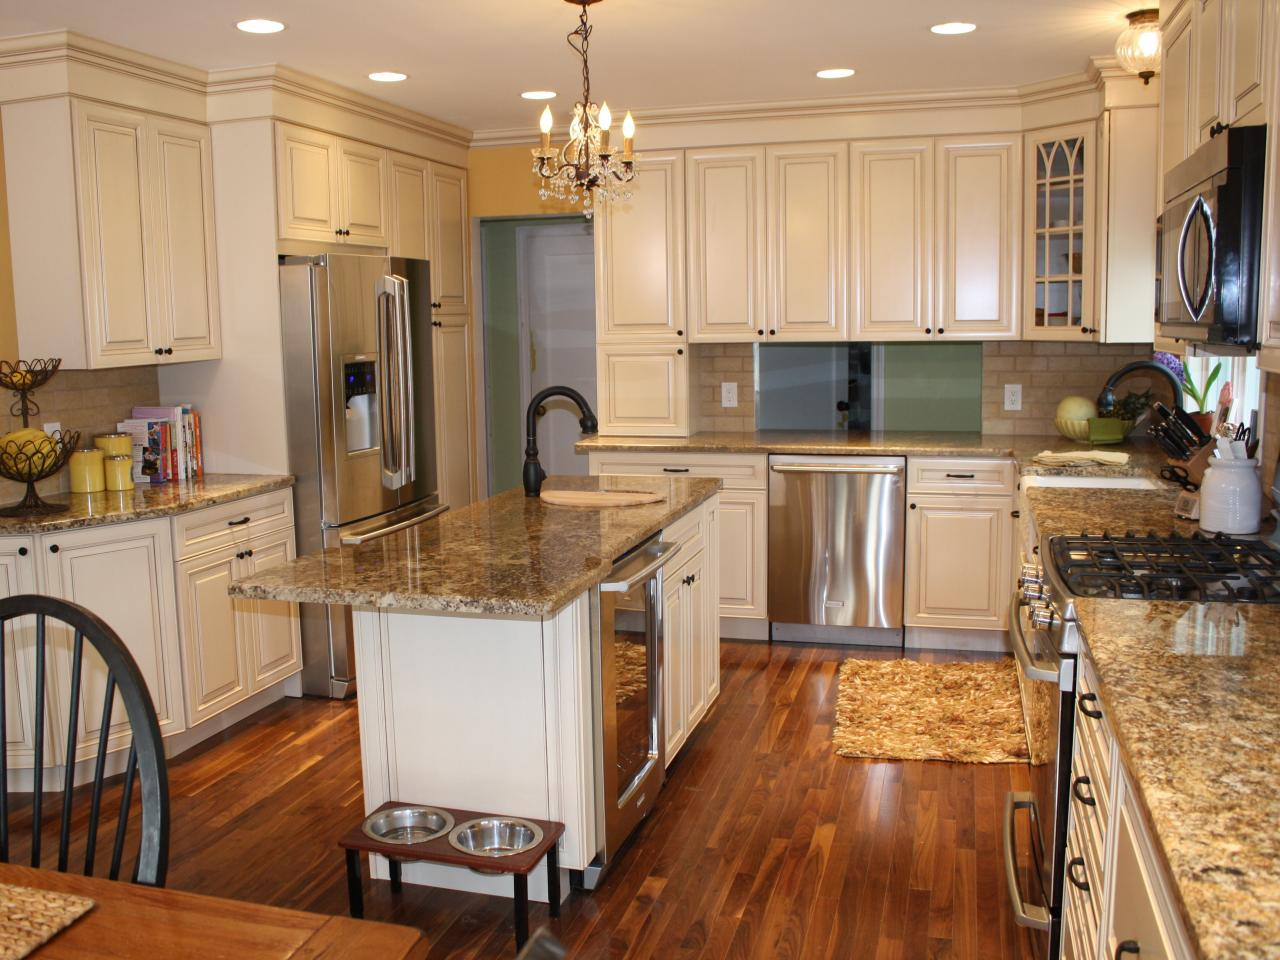 Kitchen Renovations: Top Questions To Ask Your Contractor